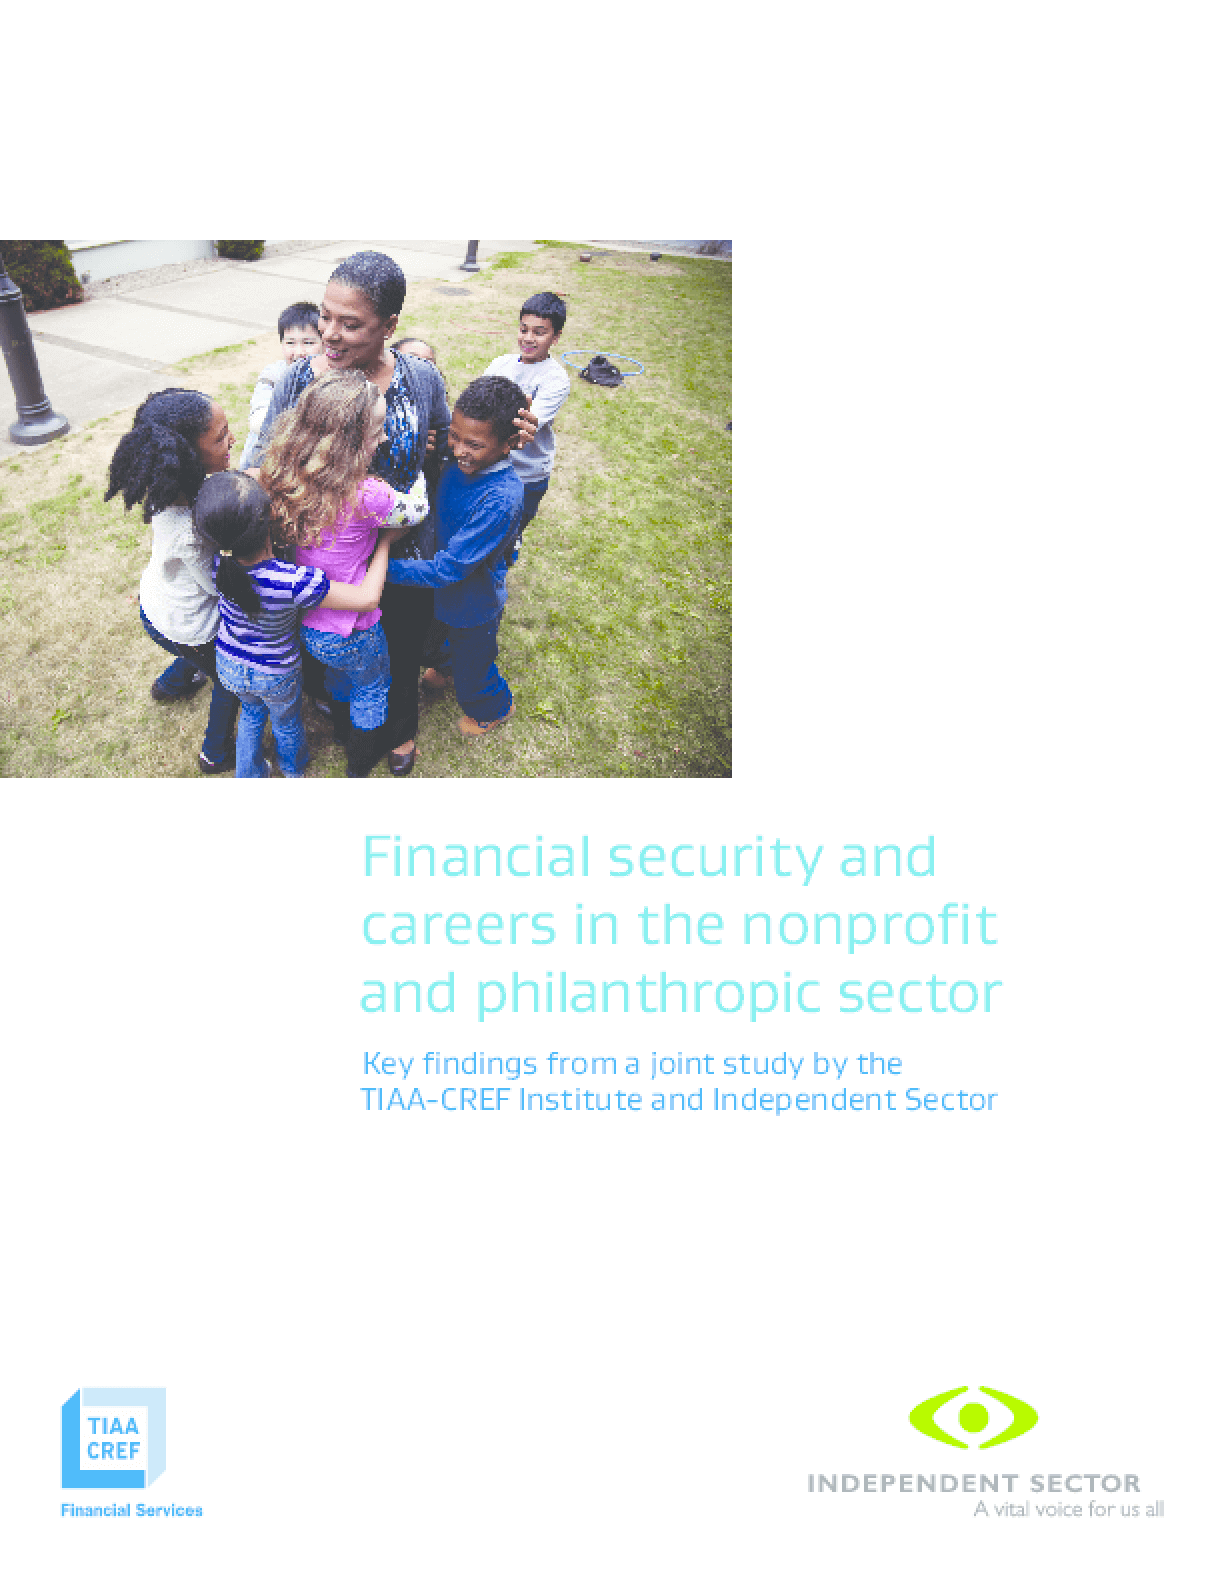 The Financial Security and Careers in the Nonprofit and Philanthropic Sector